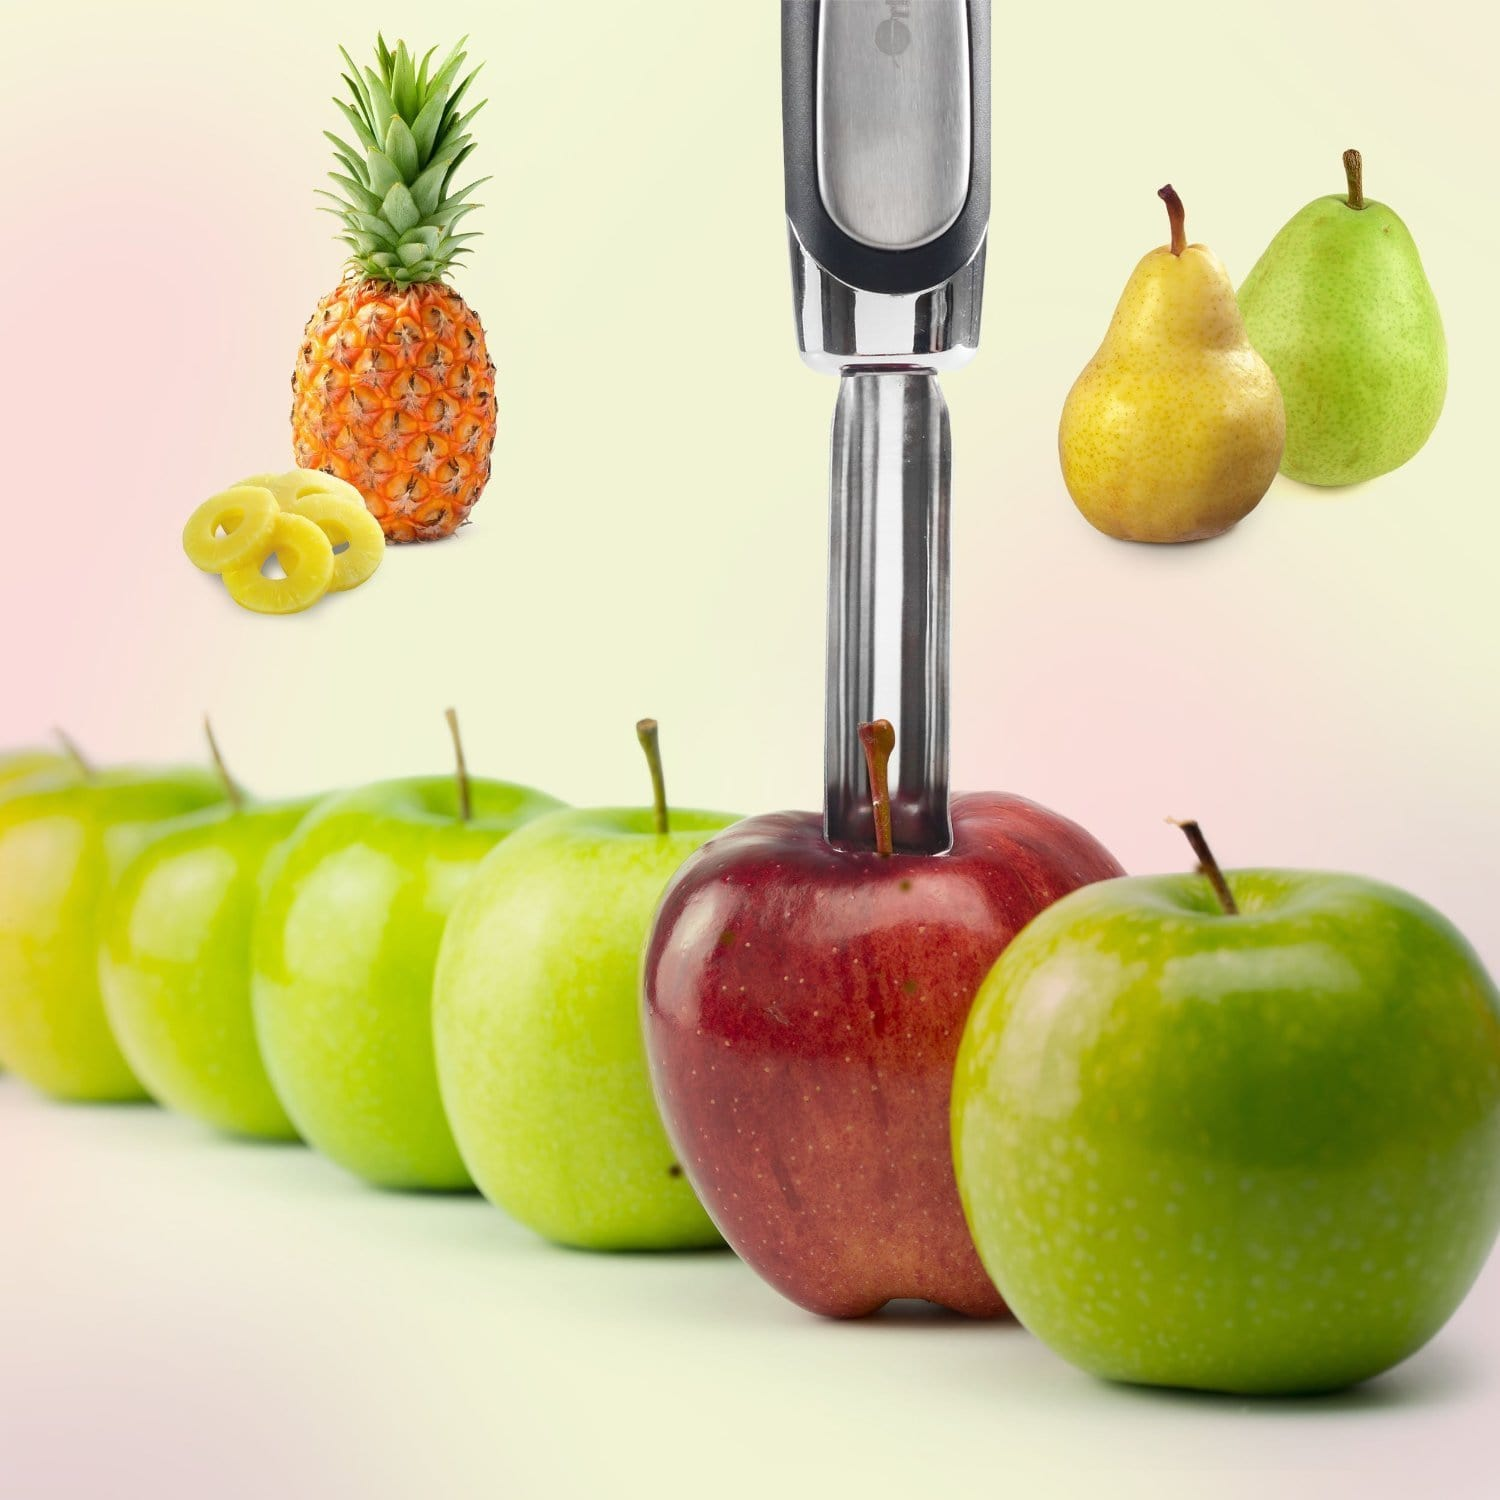 Stainless steel corer(50%OFF )